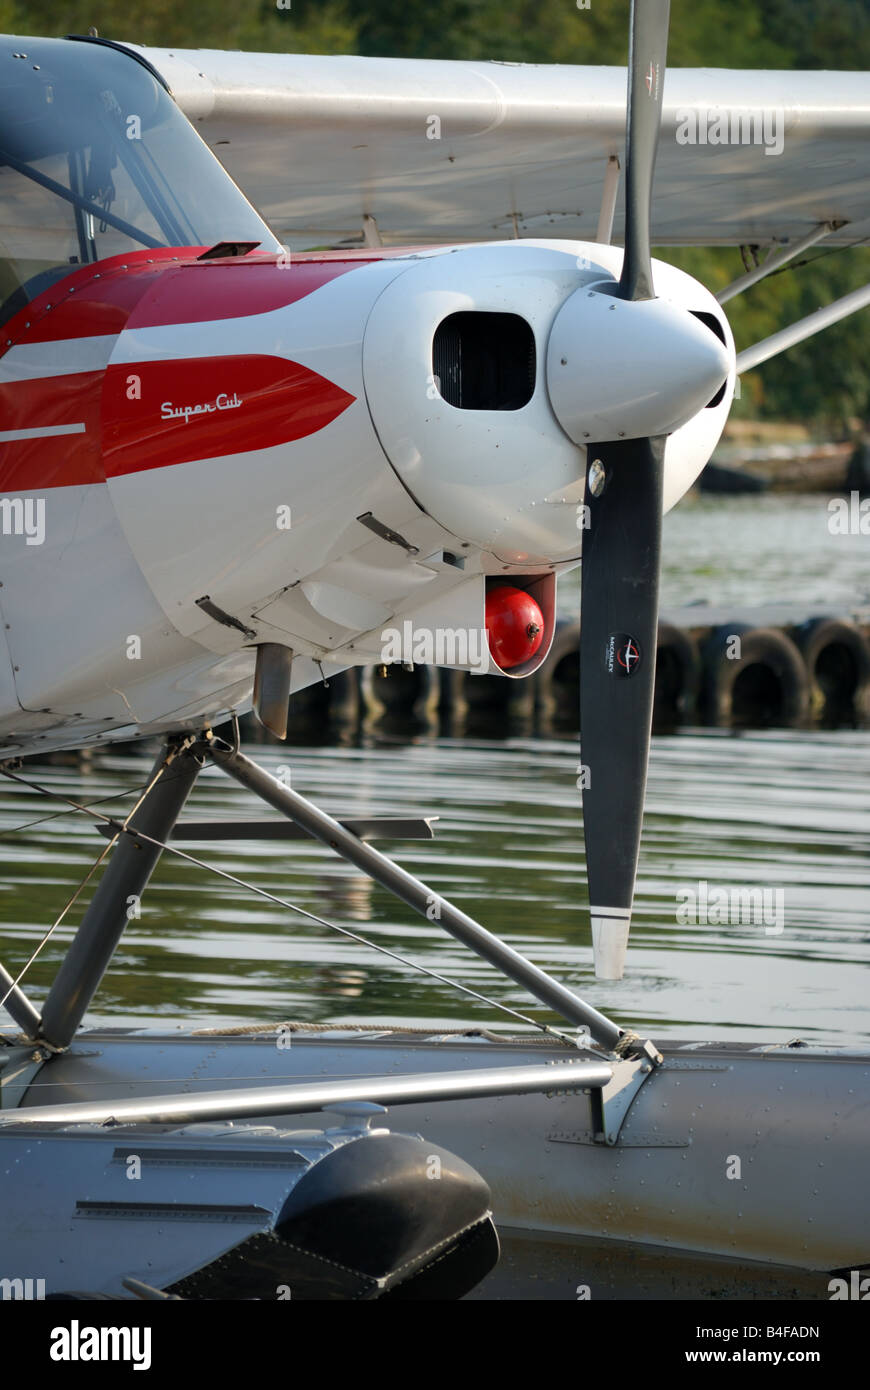 A float plane at Seattle-based Kenmore Air's Lake Washington facility. - Stock Image